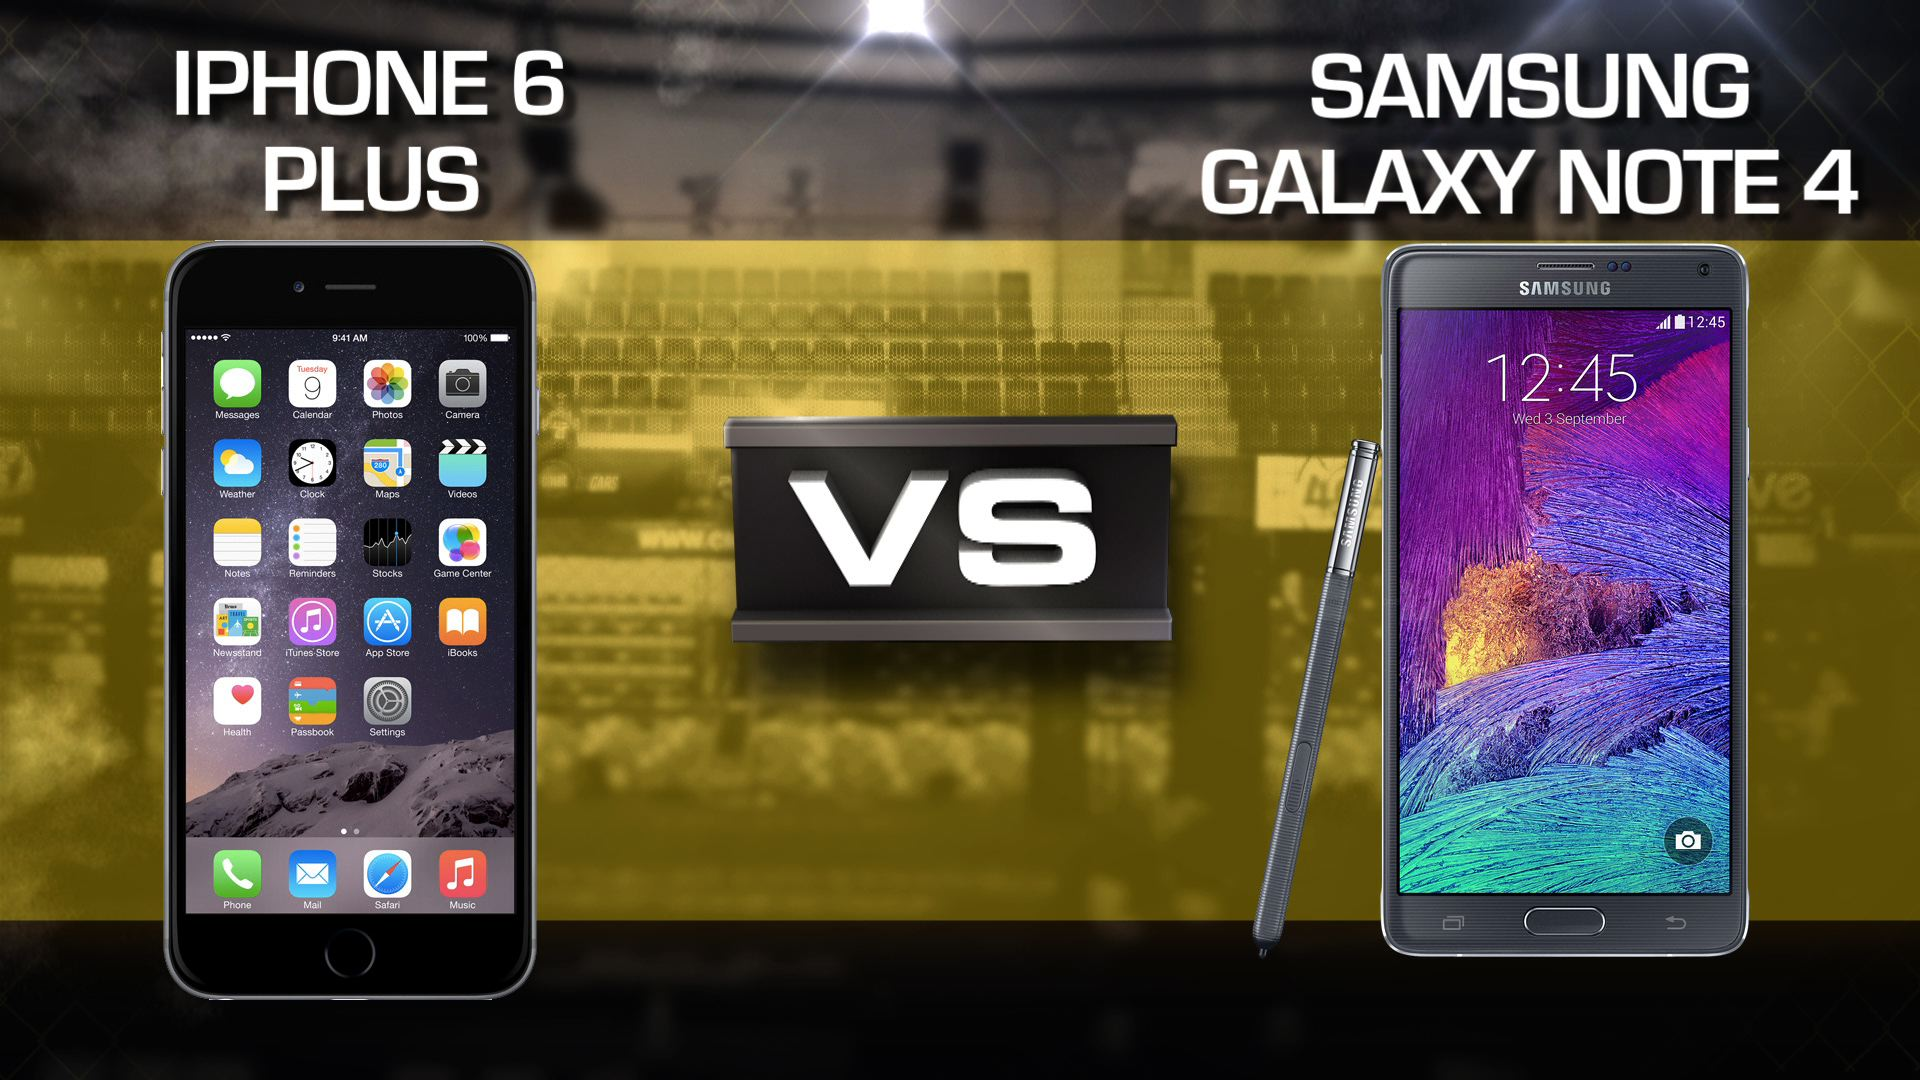 Video: iPhone 6 Plus vs. Galaxy Note 4